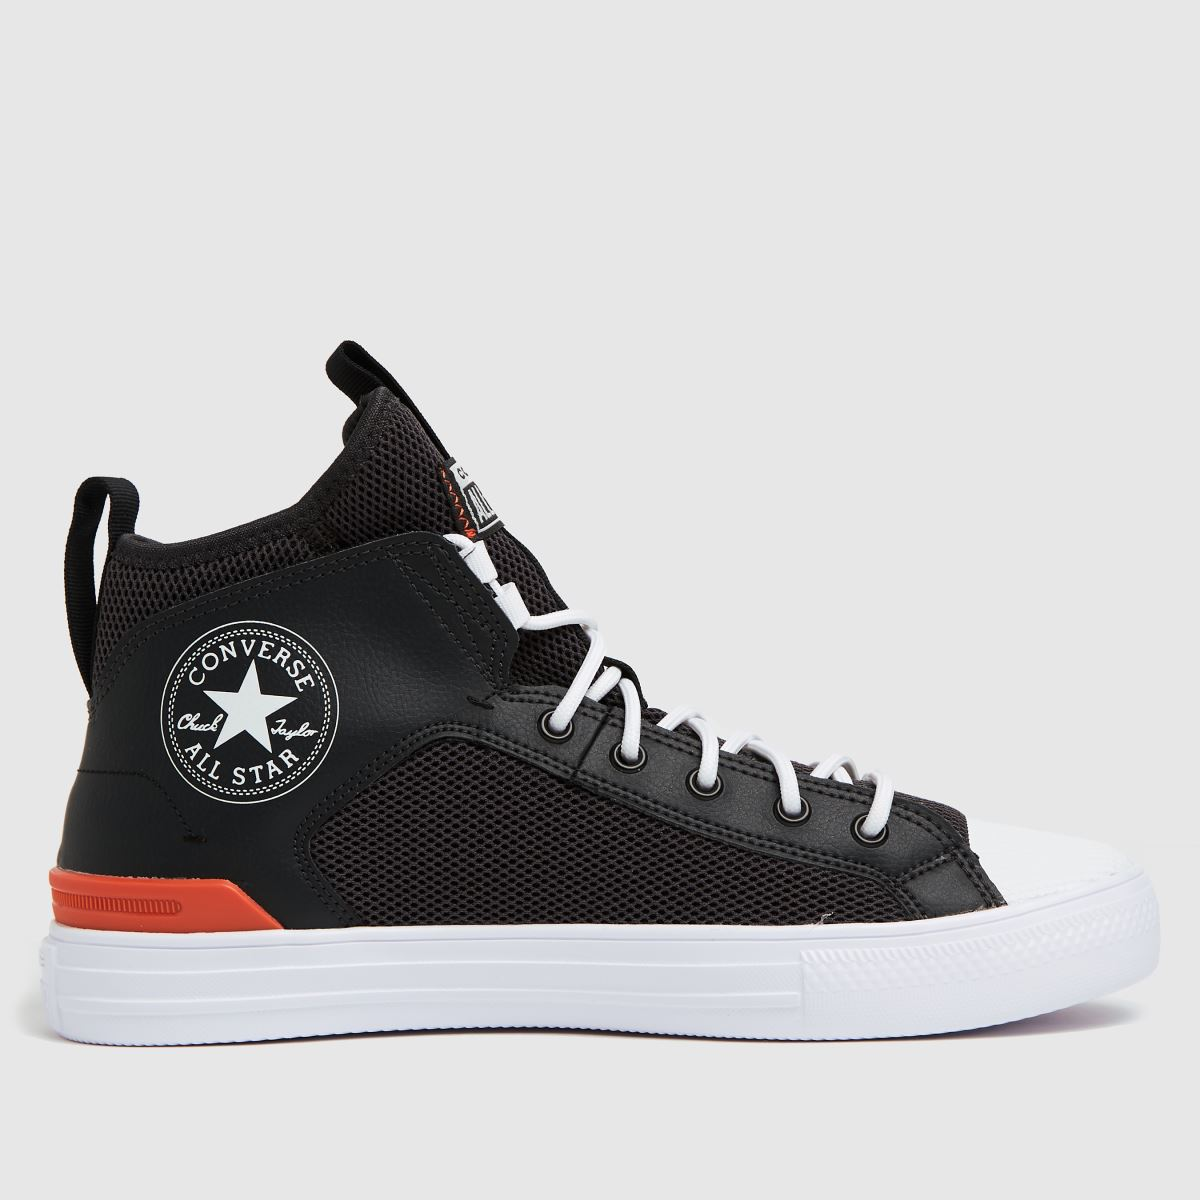 Converse Black & White Ultra Lt Weight Mid Trainers